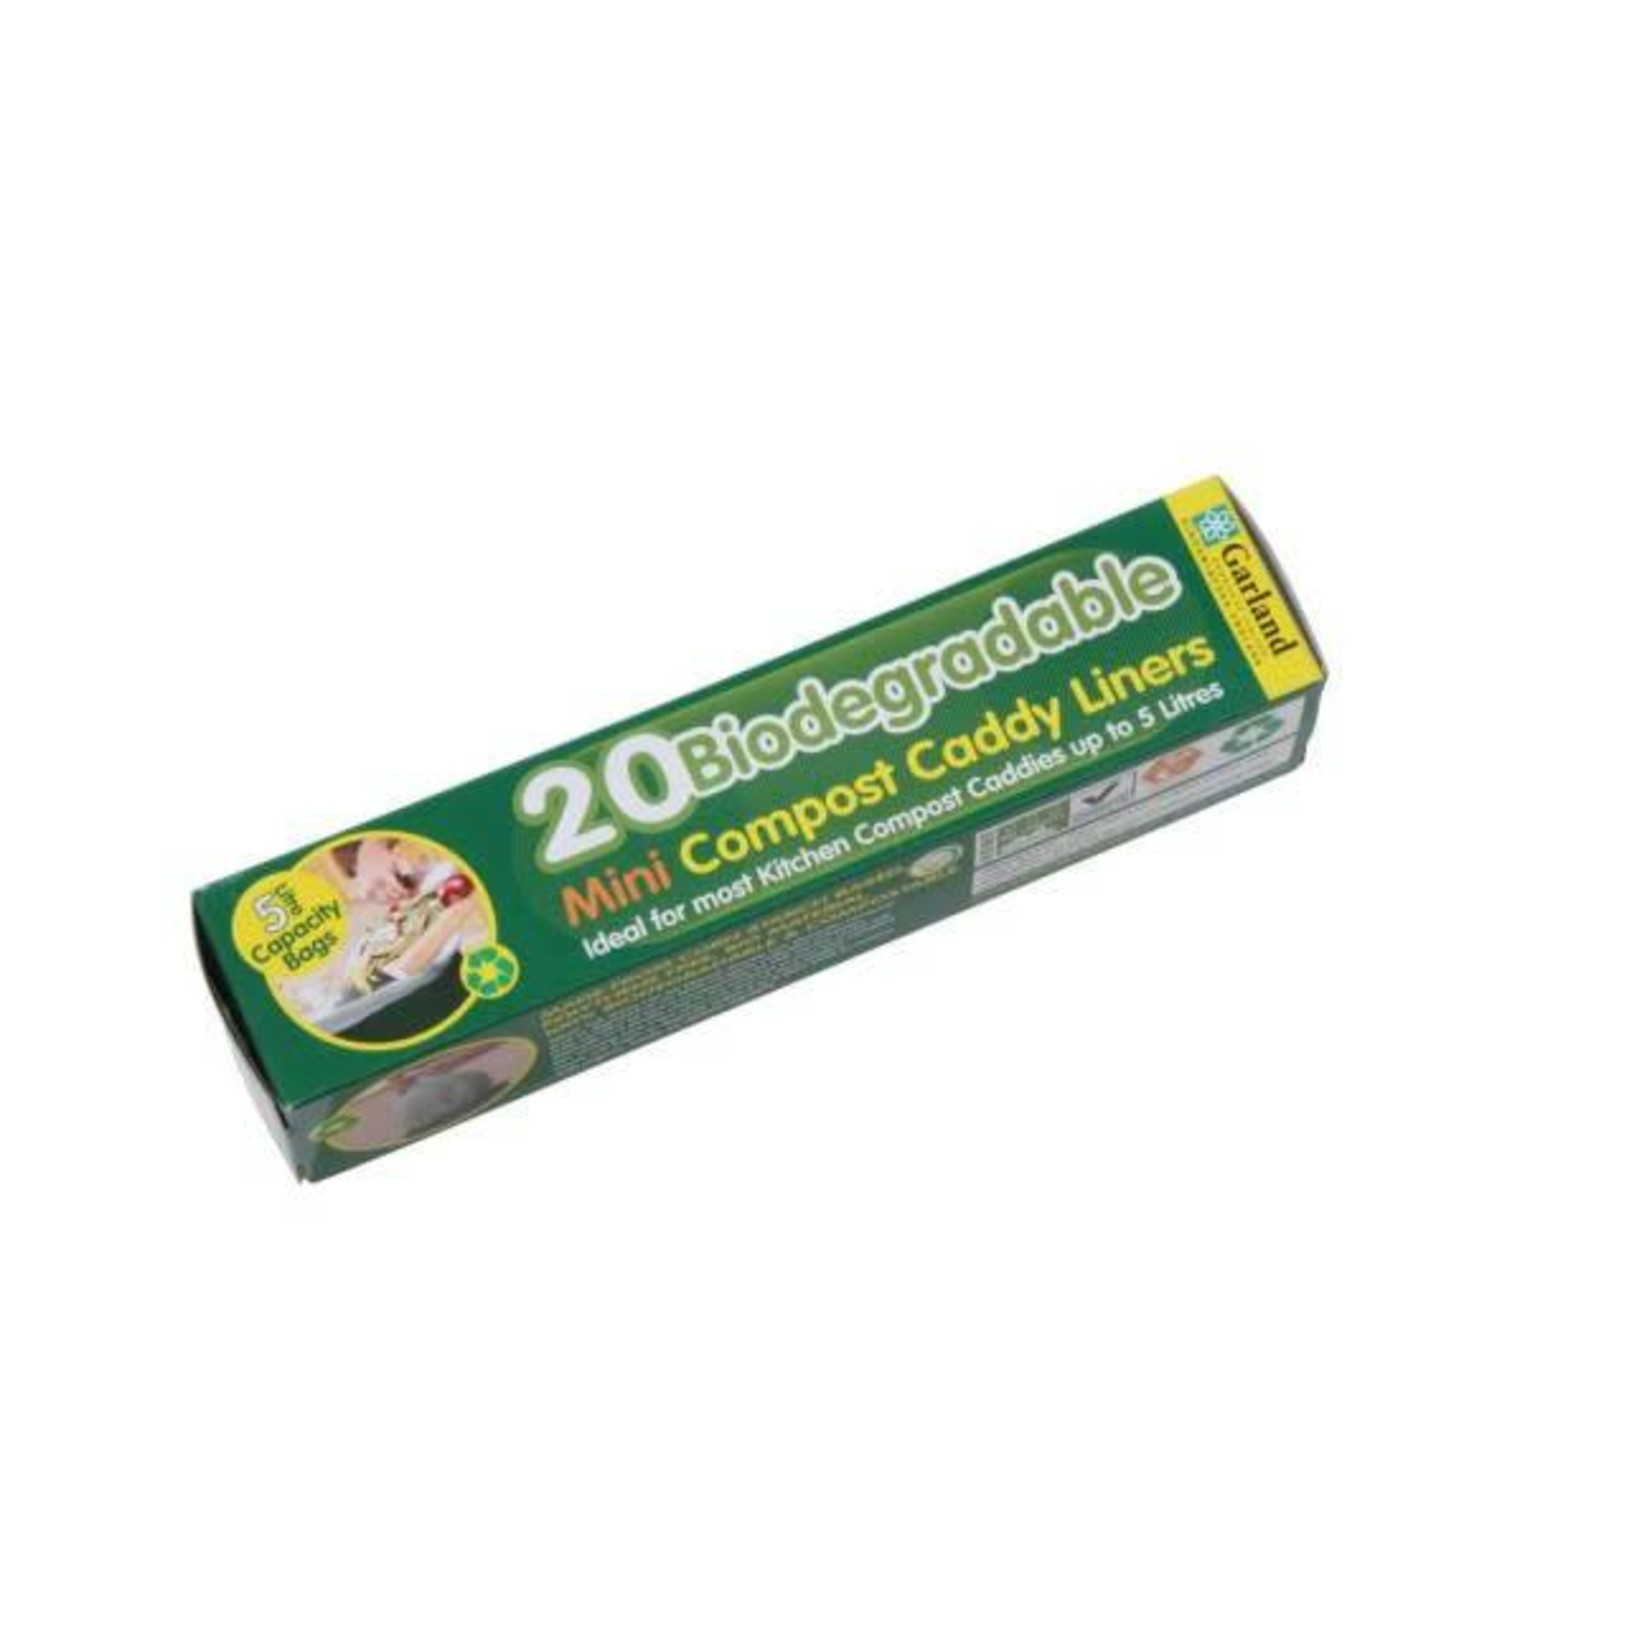 GARLAND BIODEGRADABLE 5LT COMPOST CADDY LINERS (20 PER ROLL)